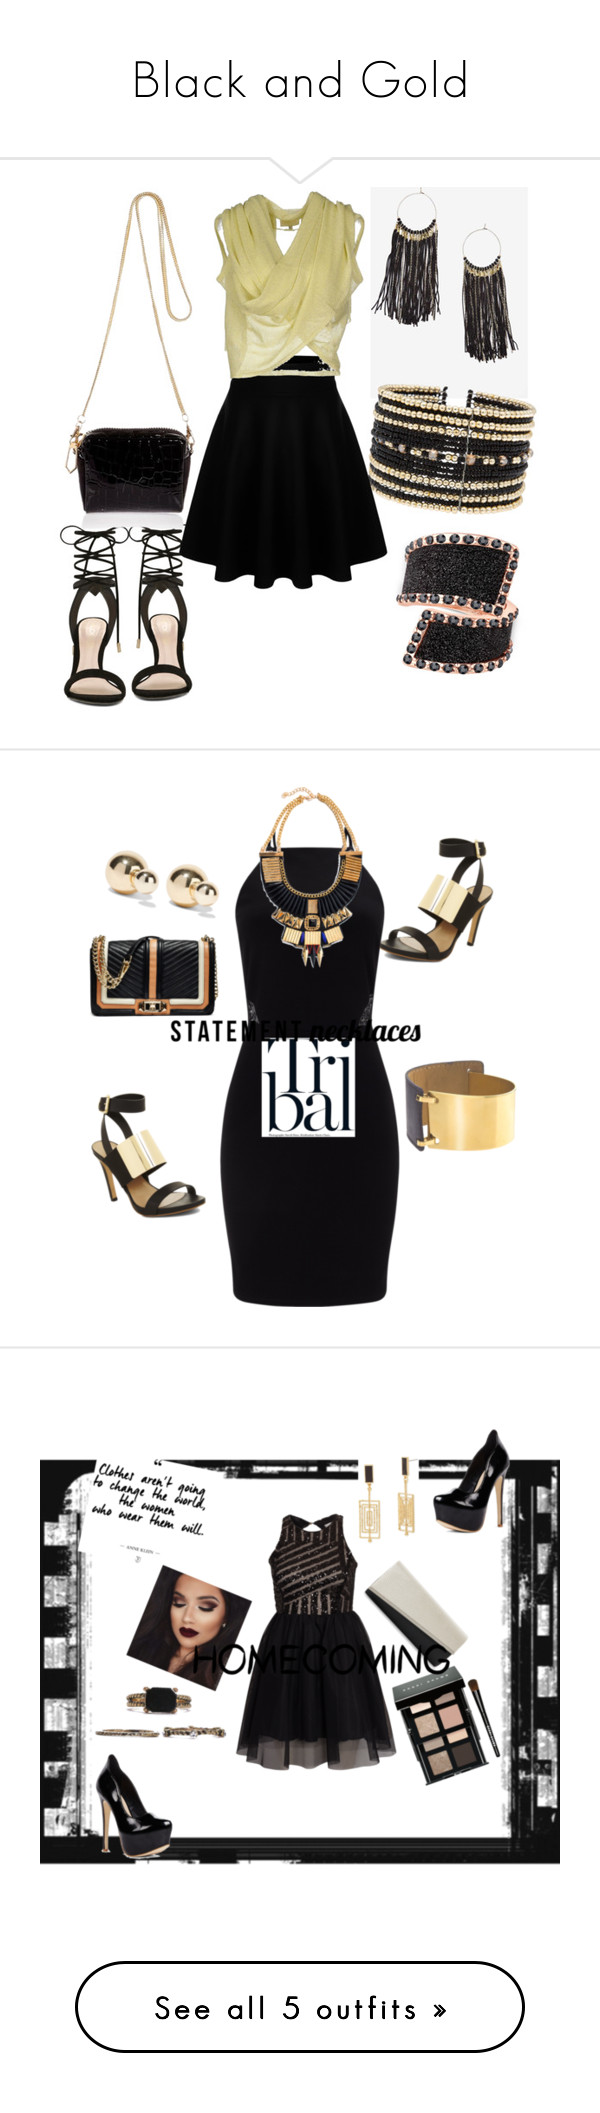 """""""Black and Gold"""" by tholliscole ❤ liked on Polyvore featuring ALDO, Eloquii, MET, GUESS, River Island, girlsnightout, BCBGMAXAZRIA, Kenneth Jay Lane, Miss Selfridge and Rebecca Minkoff"""